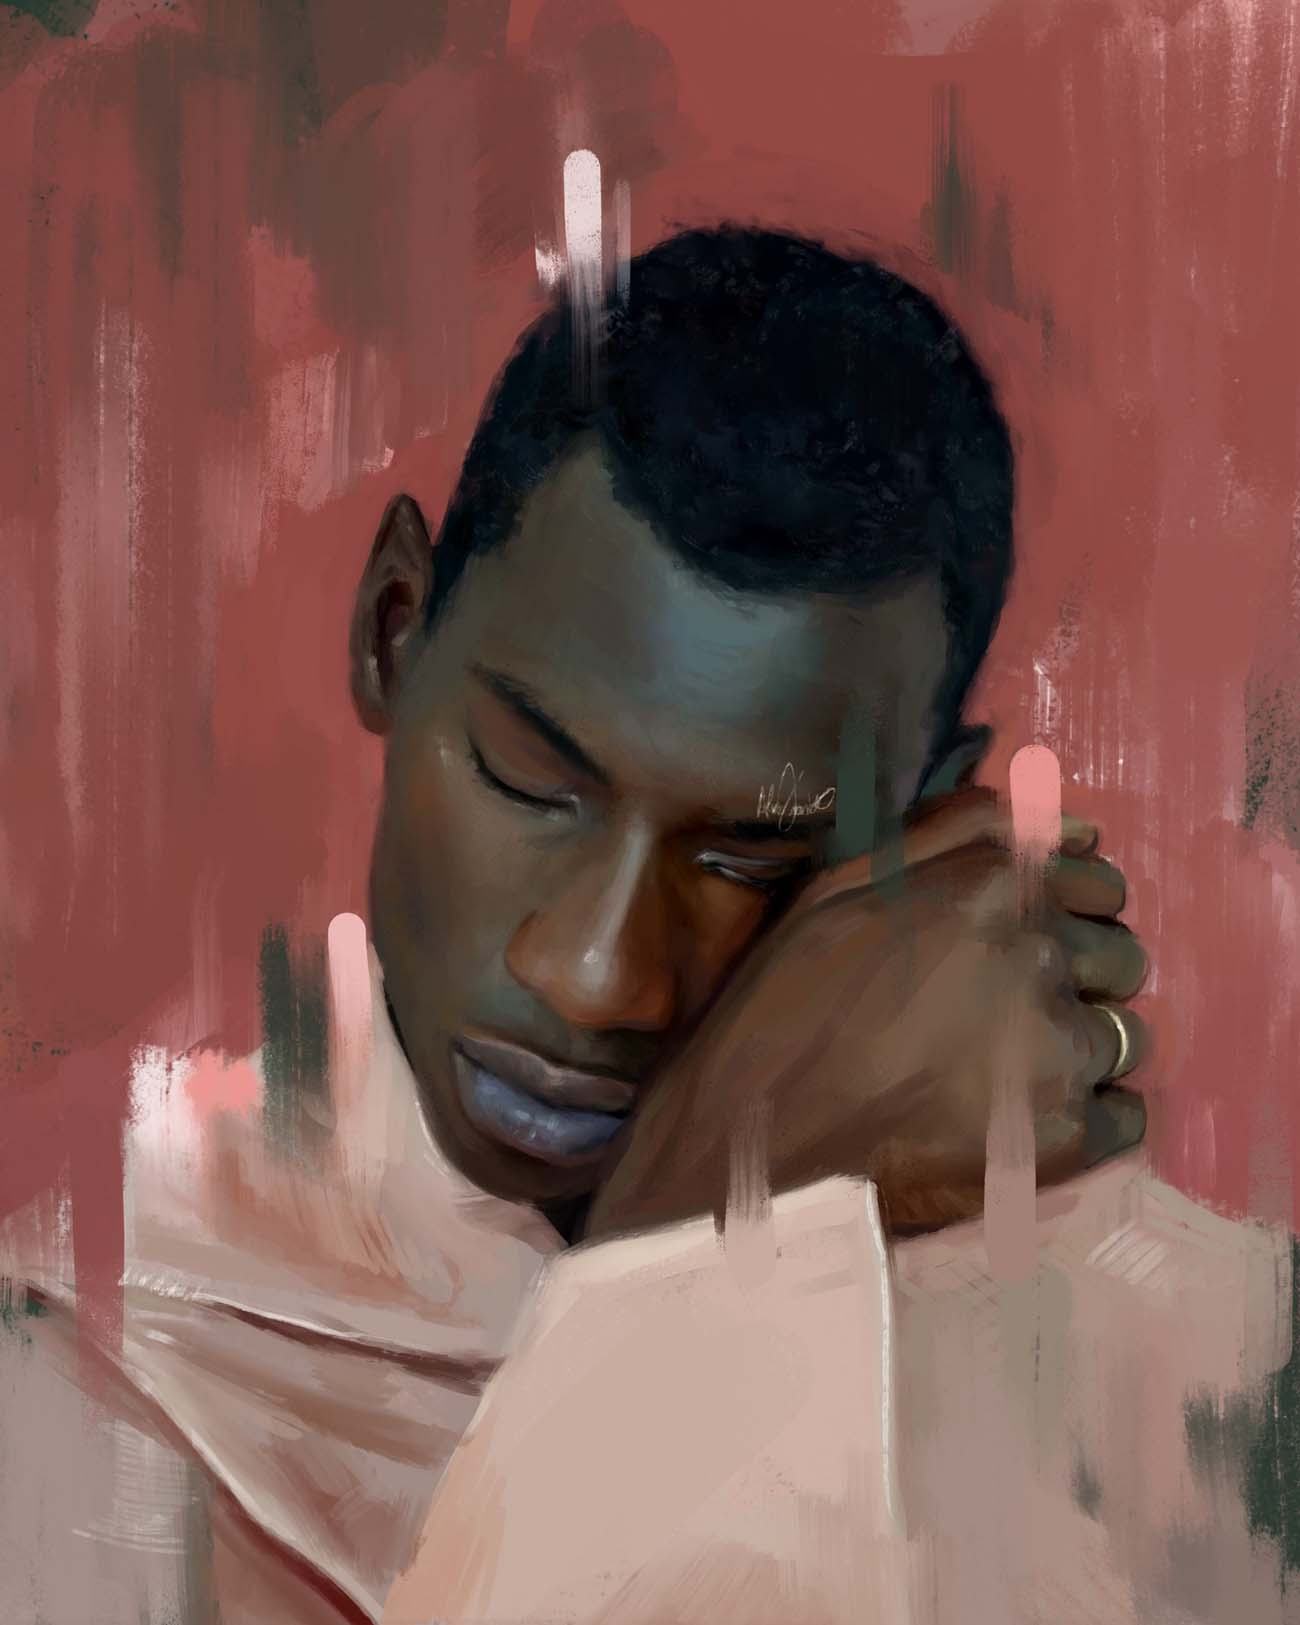 Alexis Franklin | Digital Painting & Art Inspiration on Paintable.cc